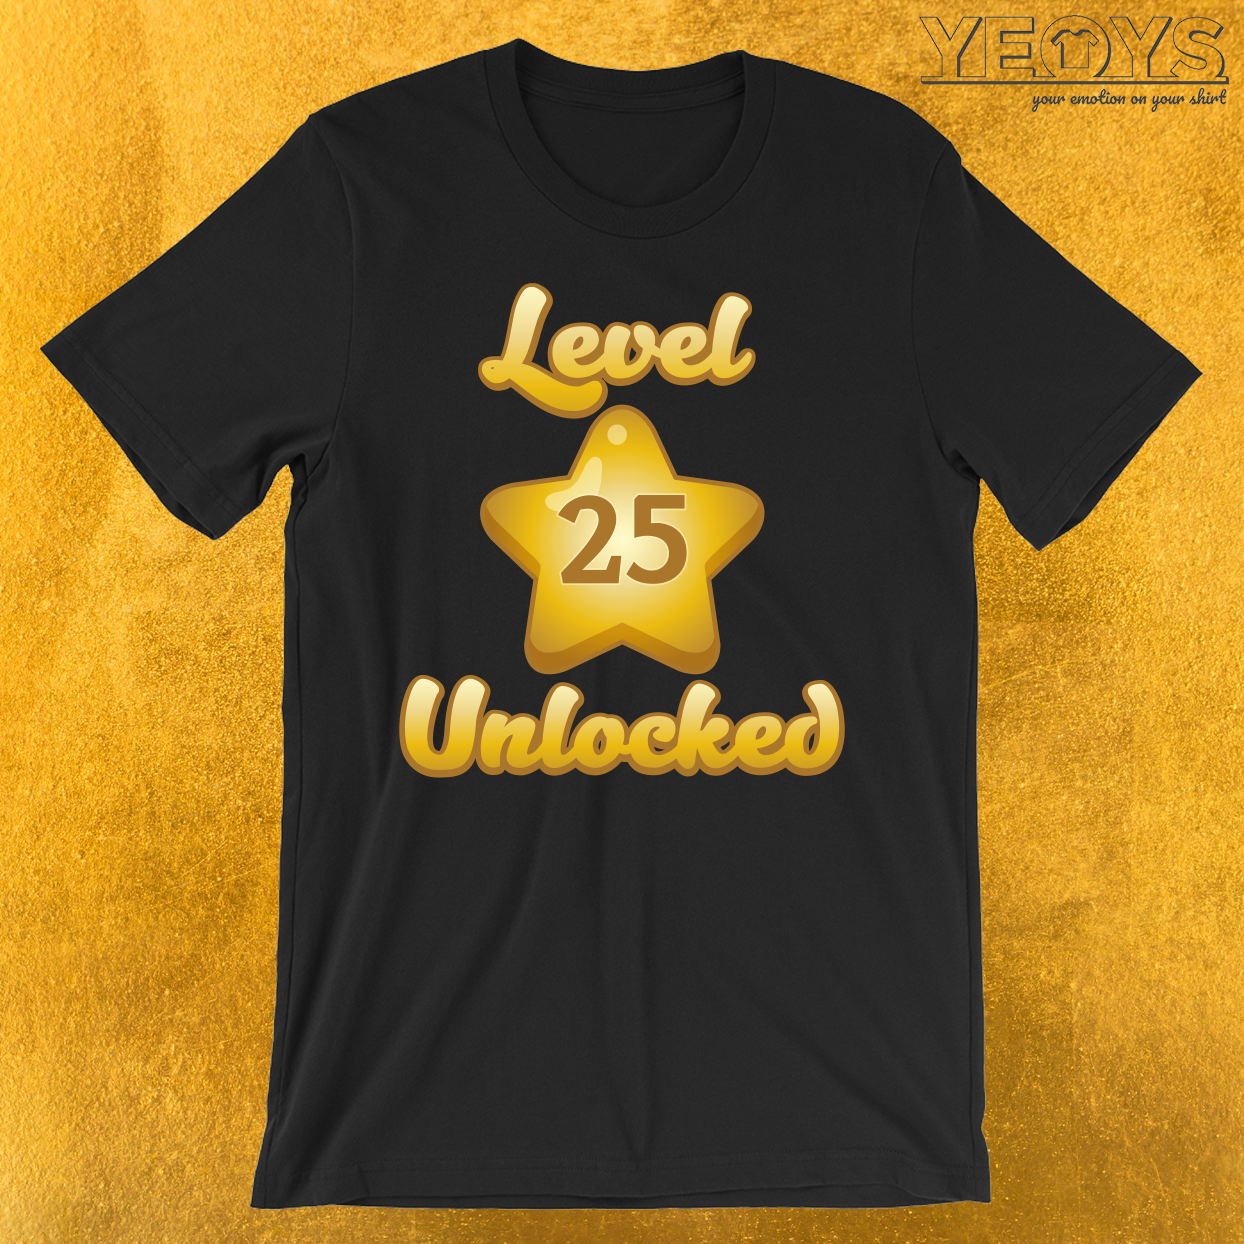 Level 25 Unlocked T-Shirt